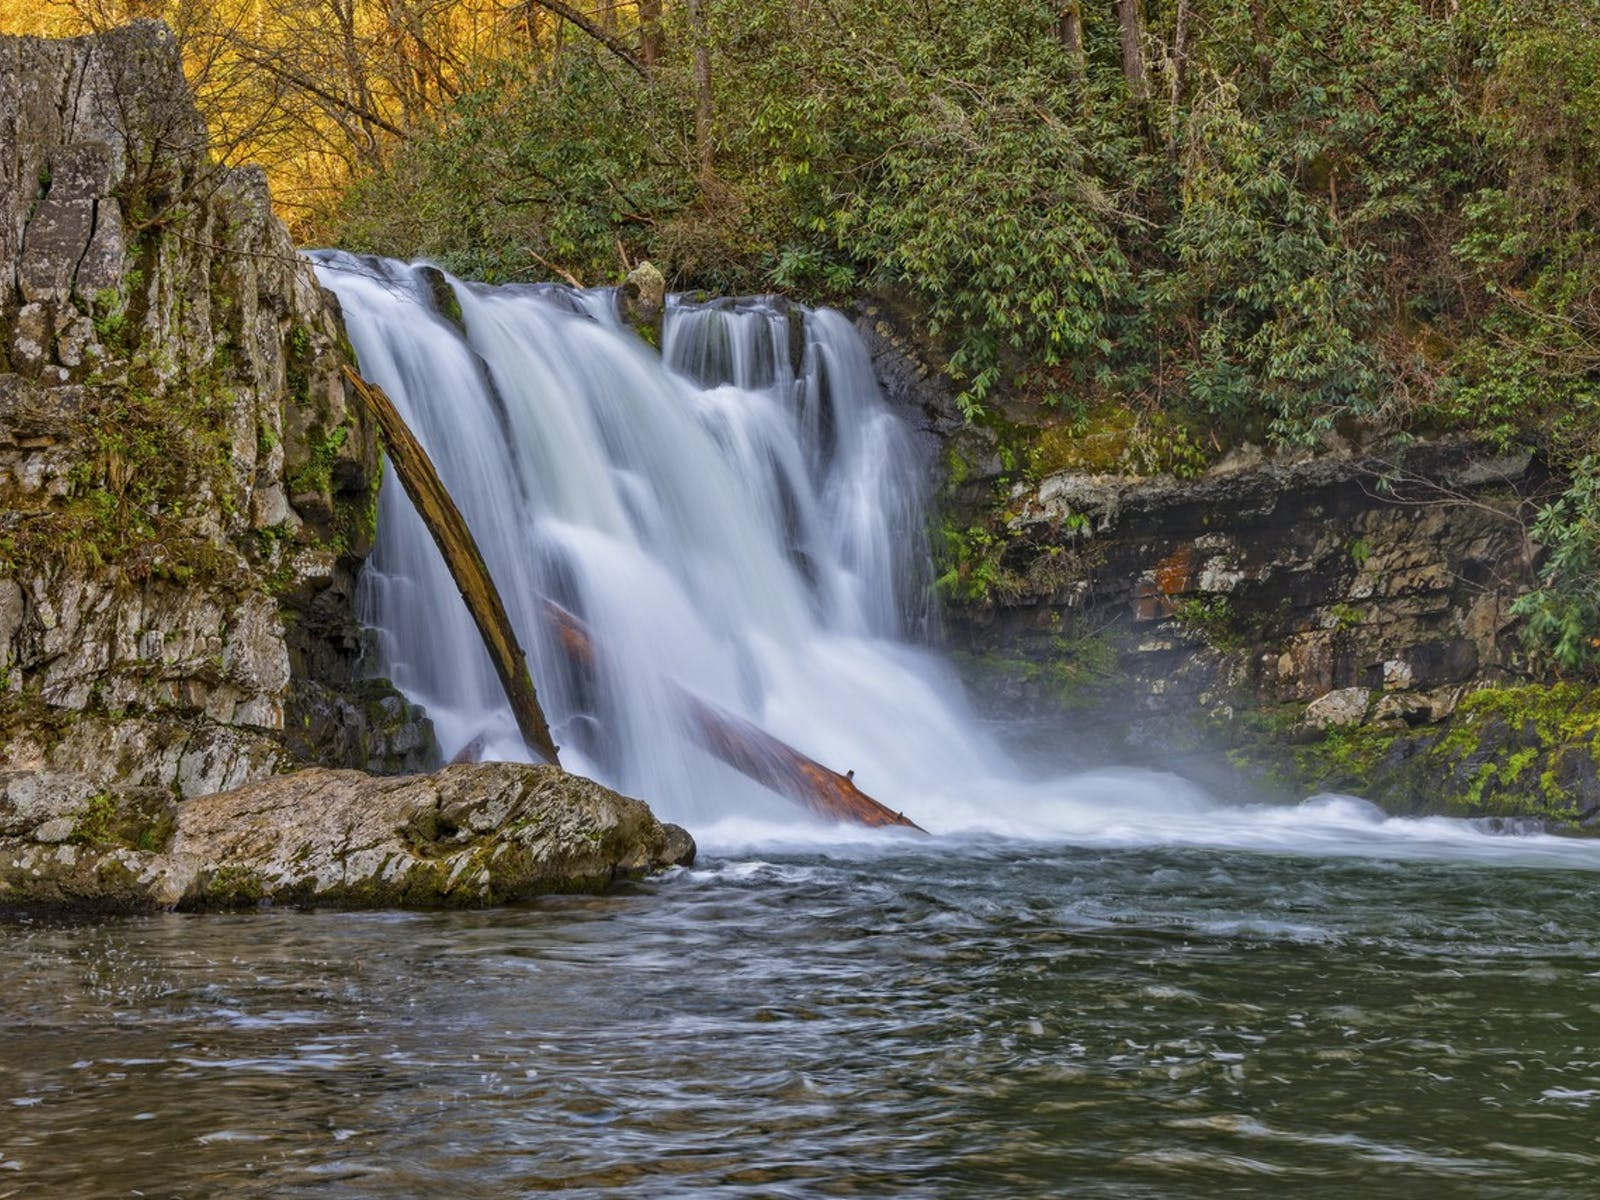 Waterfall located in the Smoky Mountains